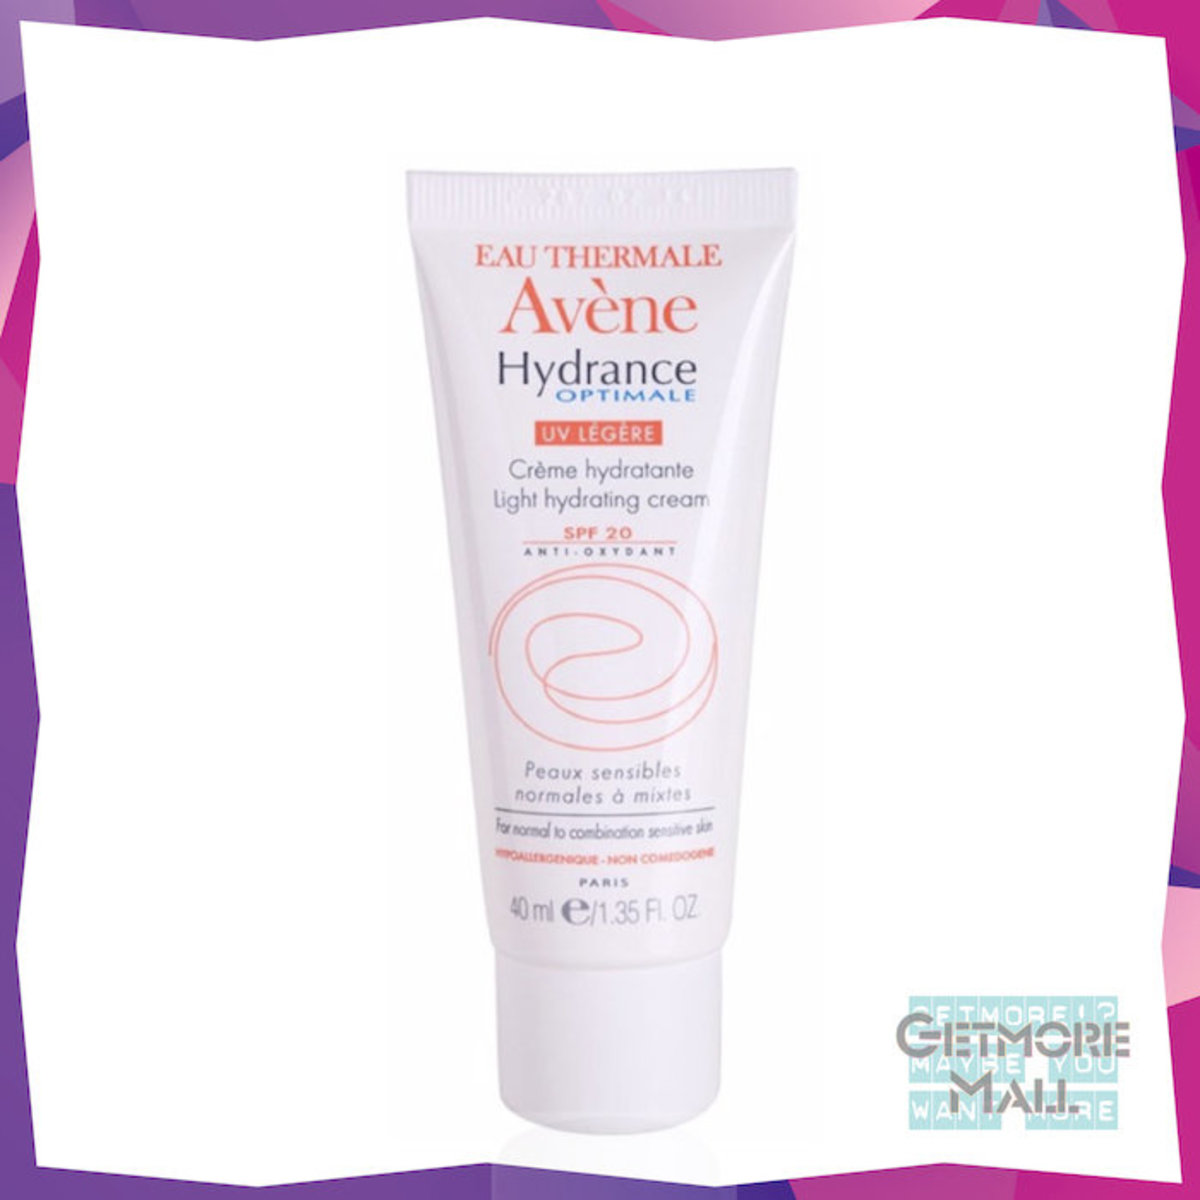 Hydrance Optimale UV Light Hydrating Cream SPF 20 40ml